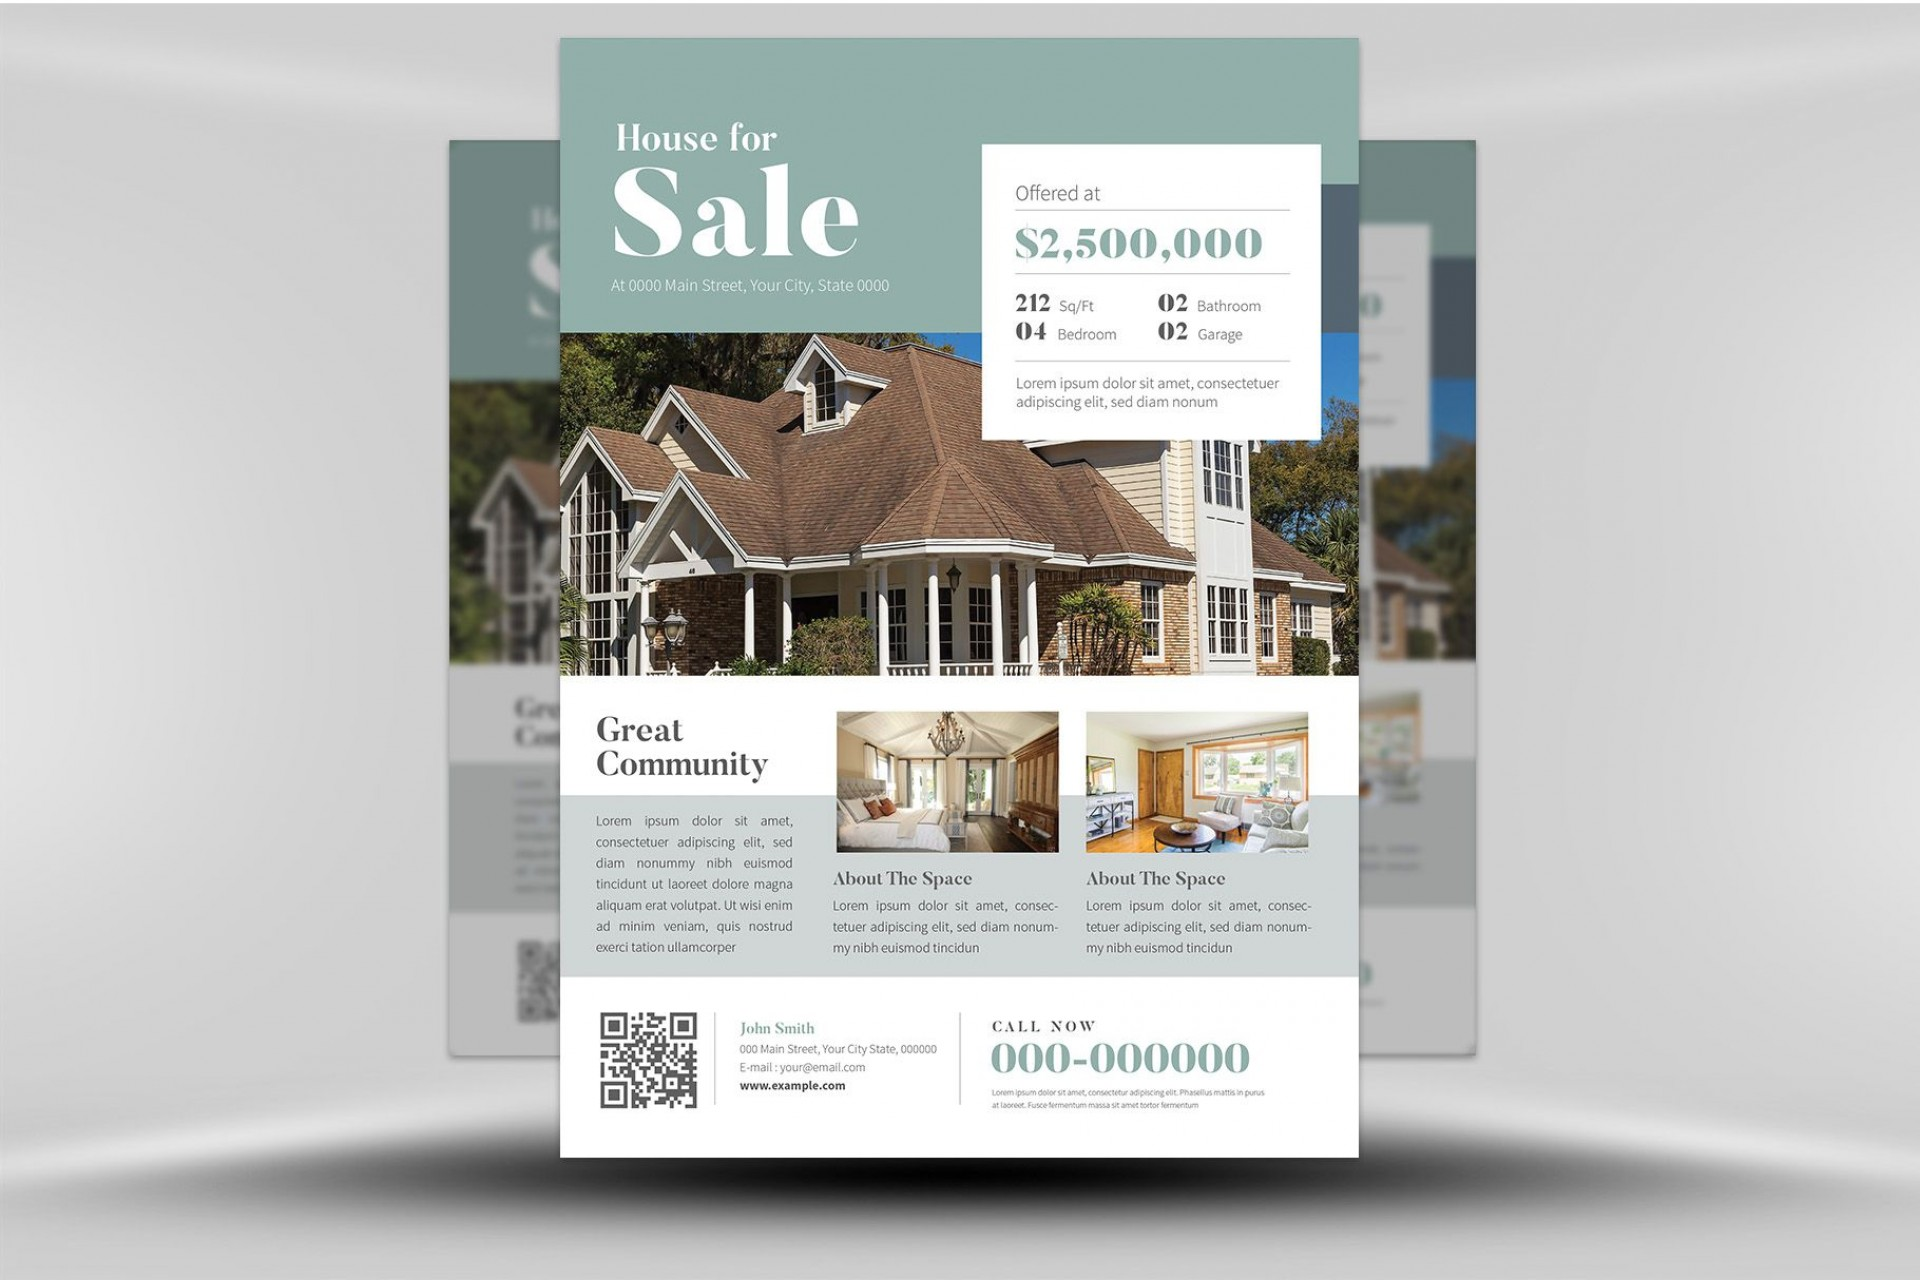 003 Impressive Real Estate Flyer Template High Resolution  Publisher Word Free1920